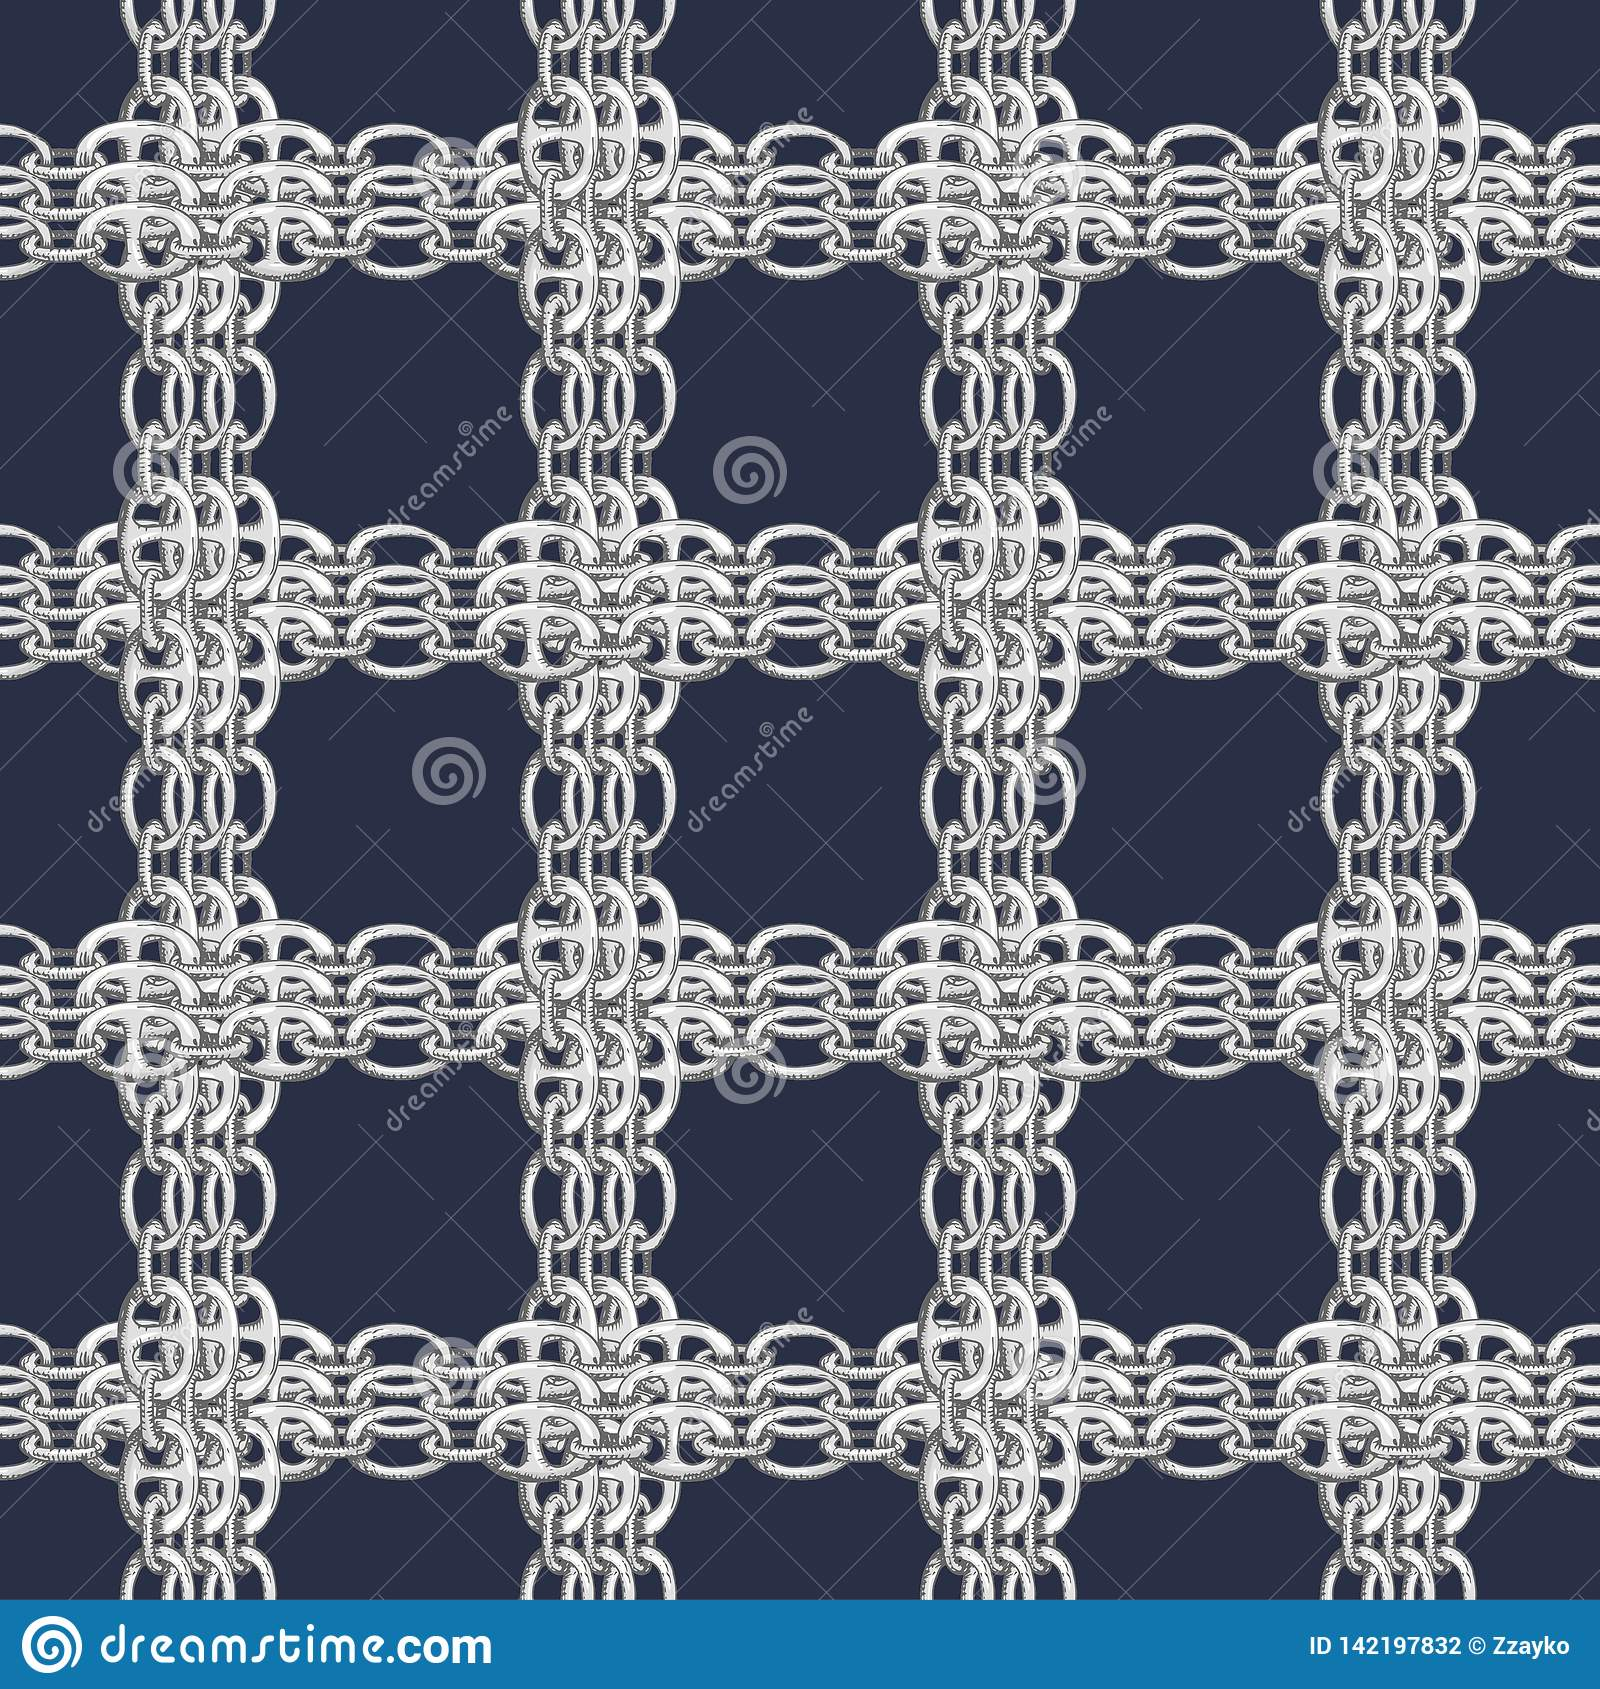 Seamless Pattern With Retro Hand-drawn Sketch Silver Chain